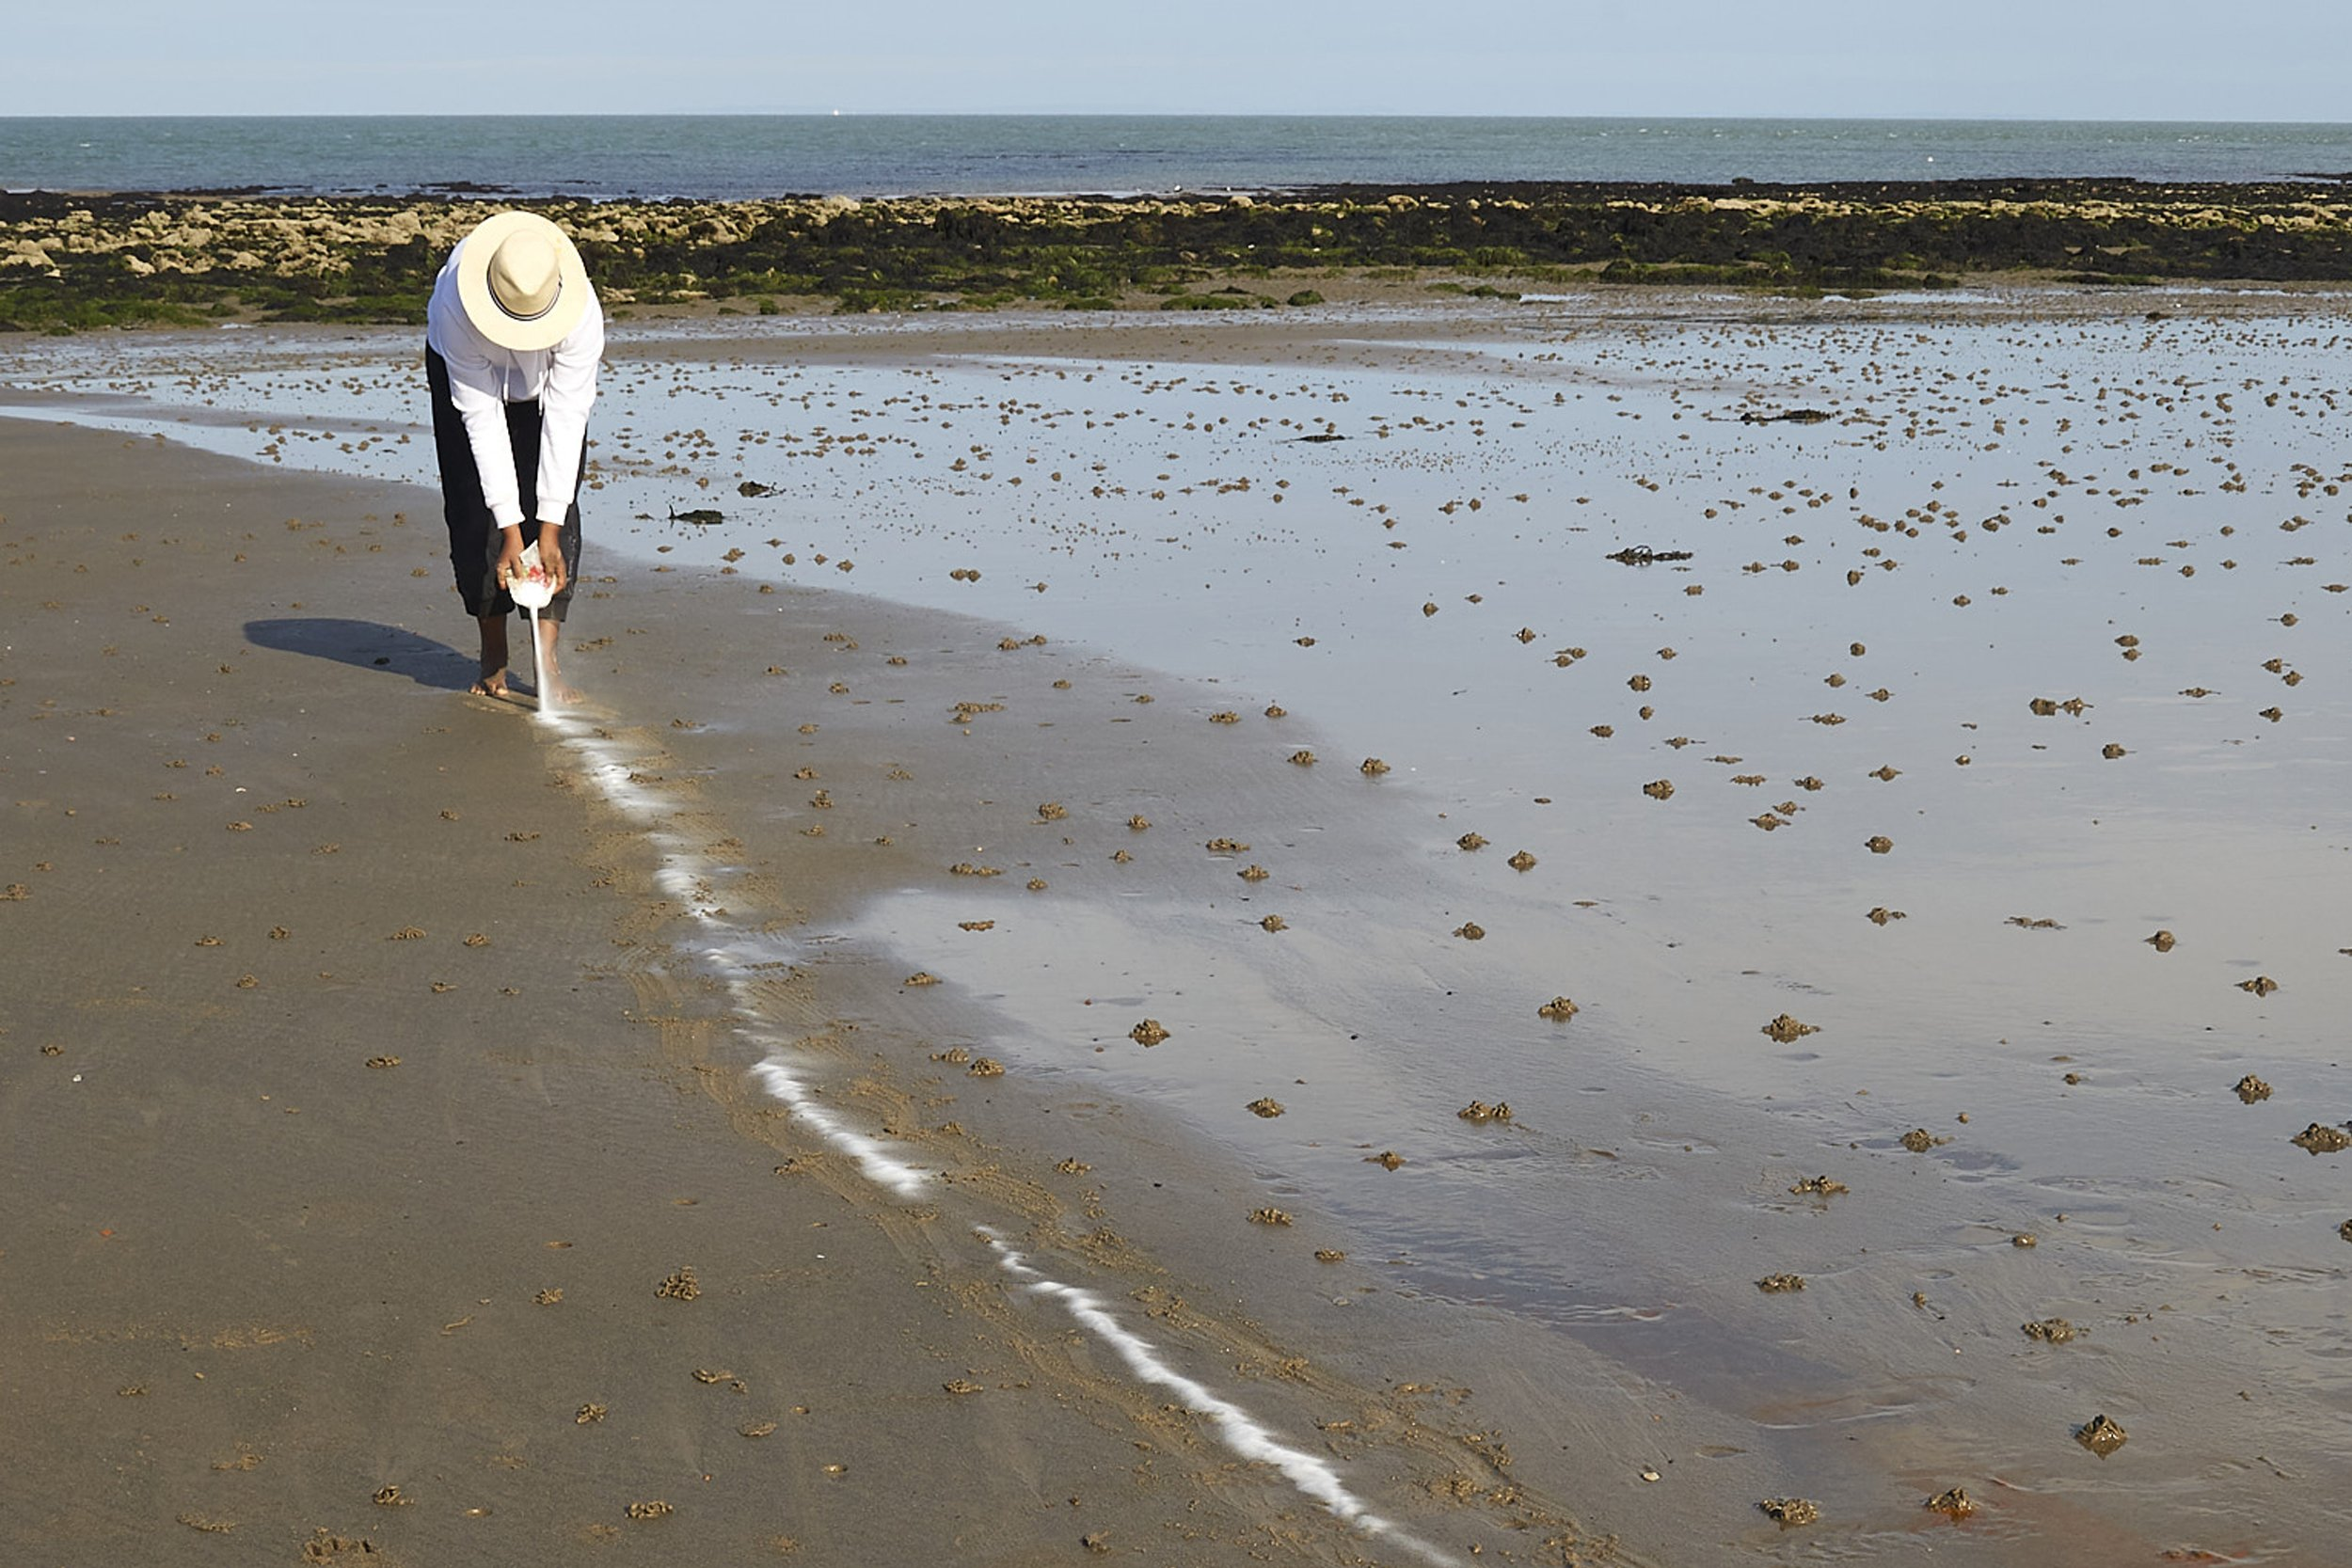 The artist walks backwards along the shoreline, pouring out a trail of white powder